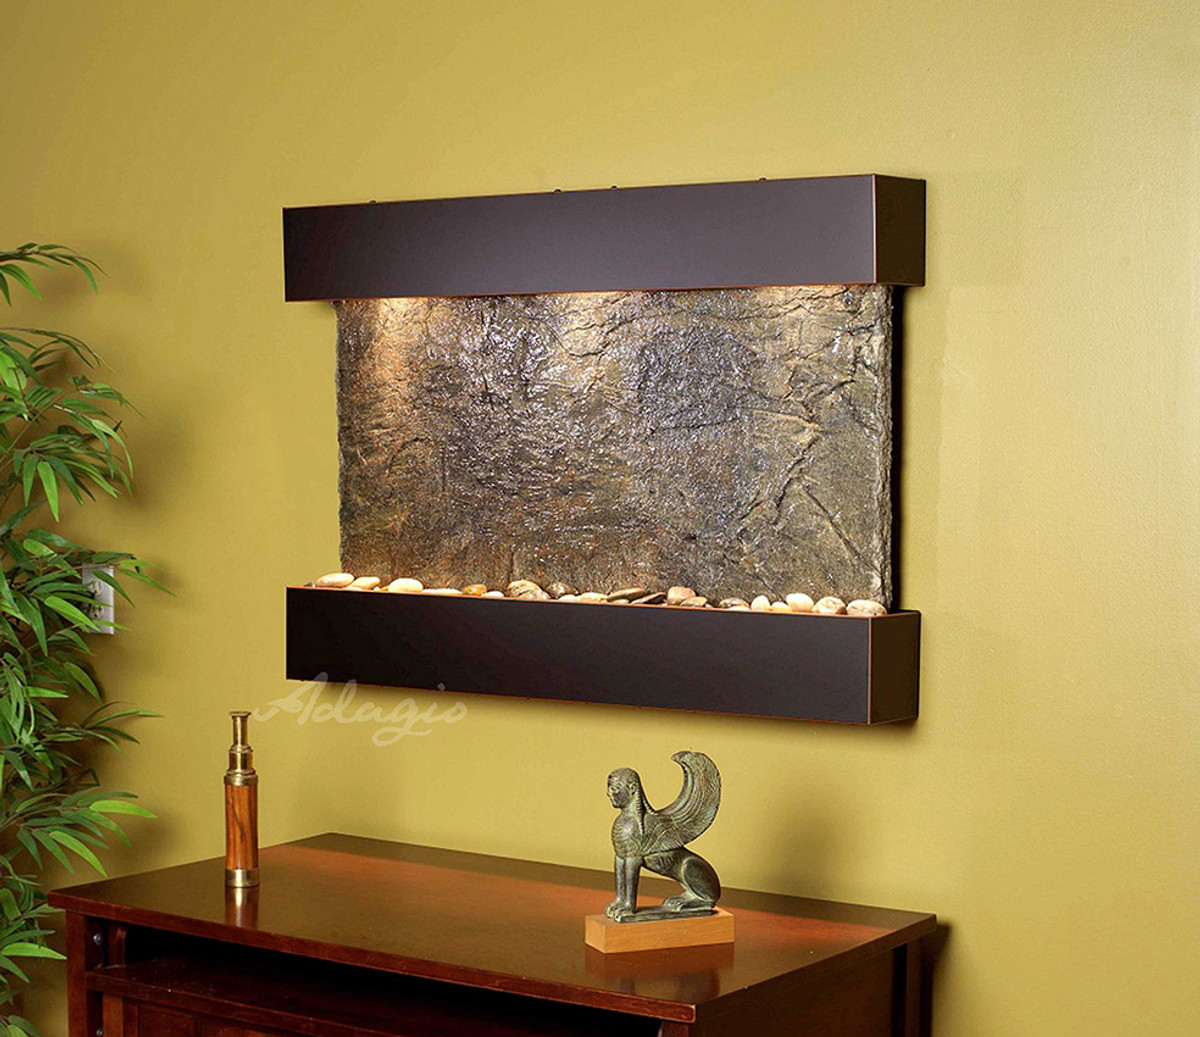 Adagio Reflection Creek Wall Fountain – Serenity Health